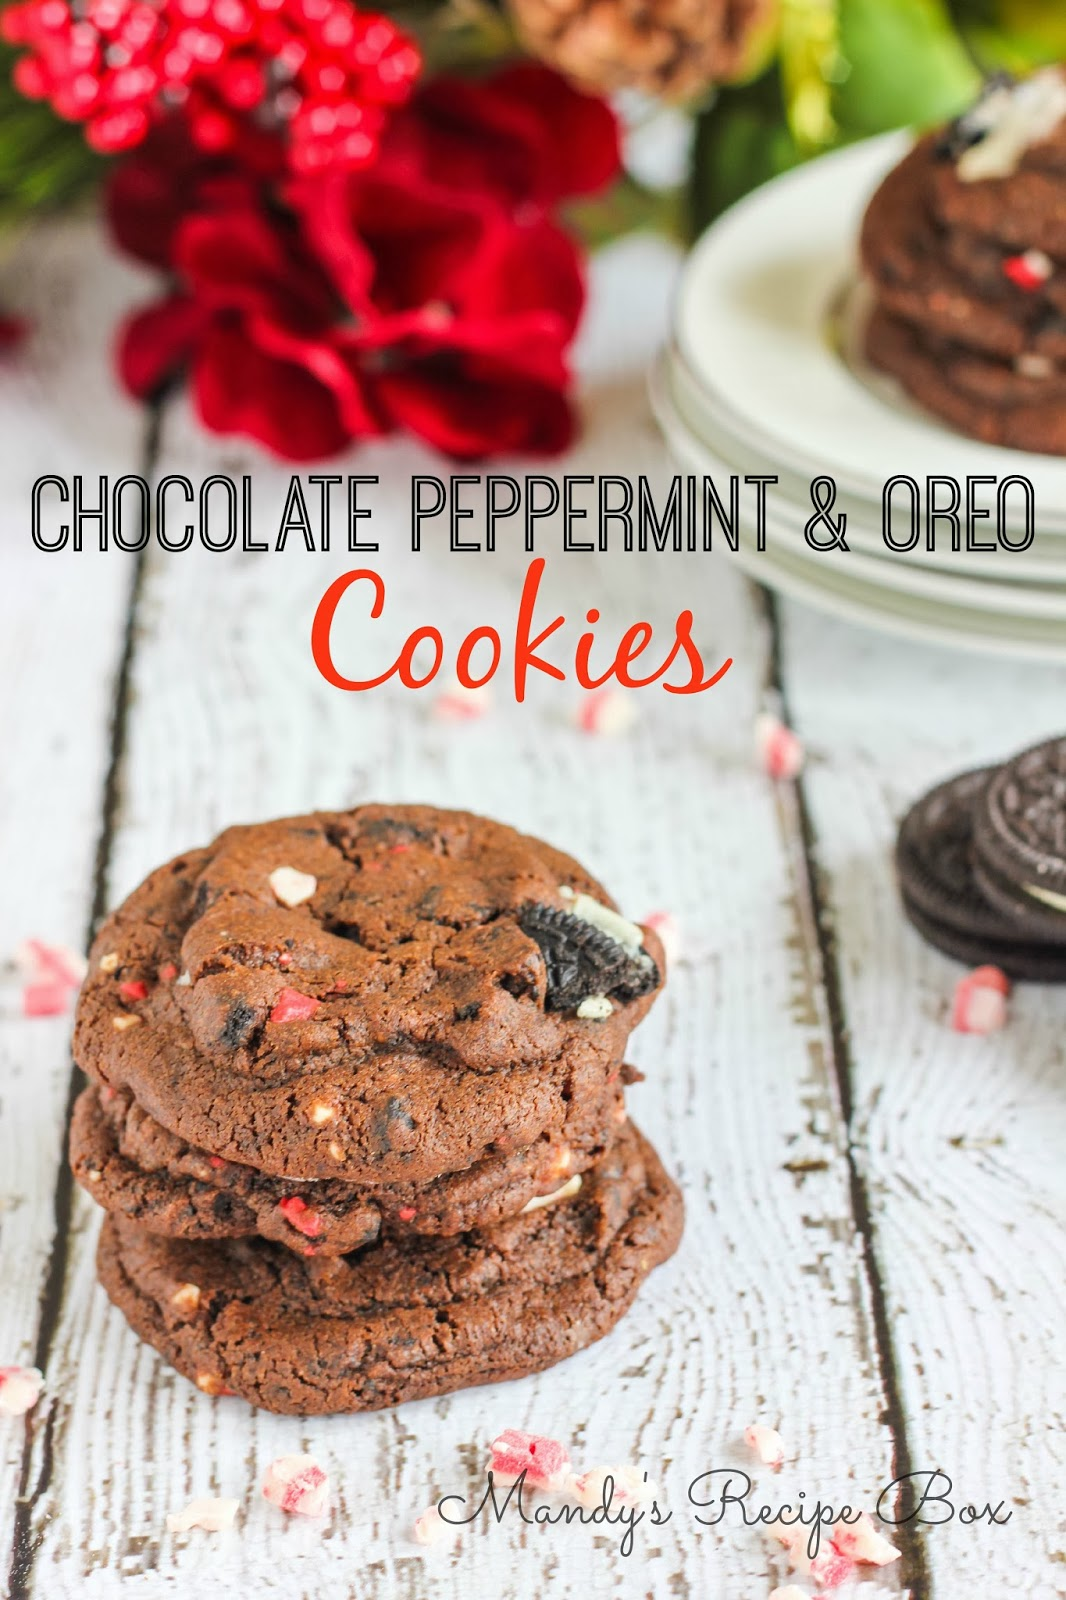 Virtual Cookie Exchange: Chocolate Peppermint & Oreo Cookies from ...